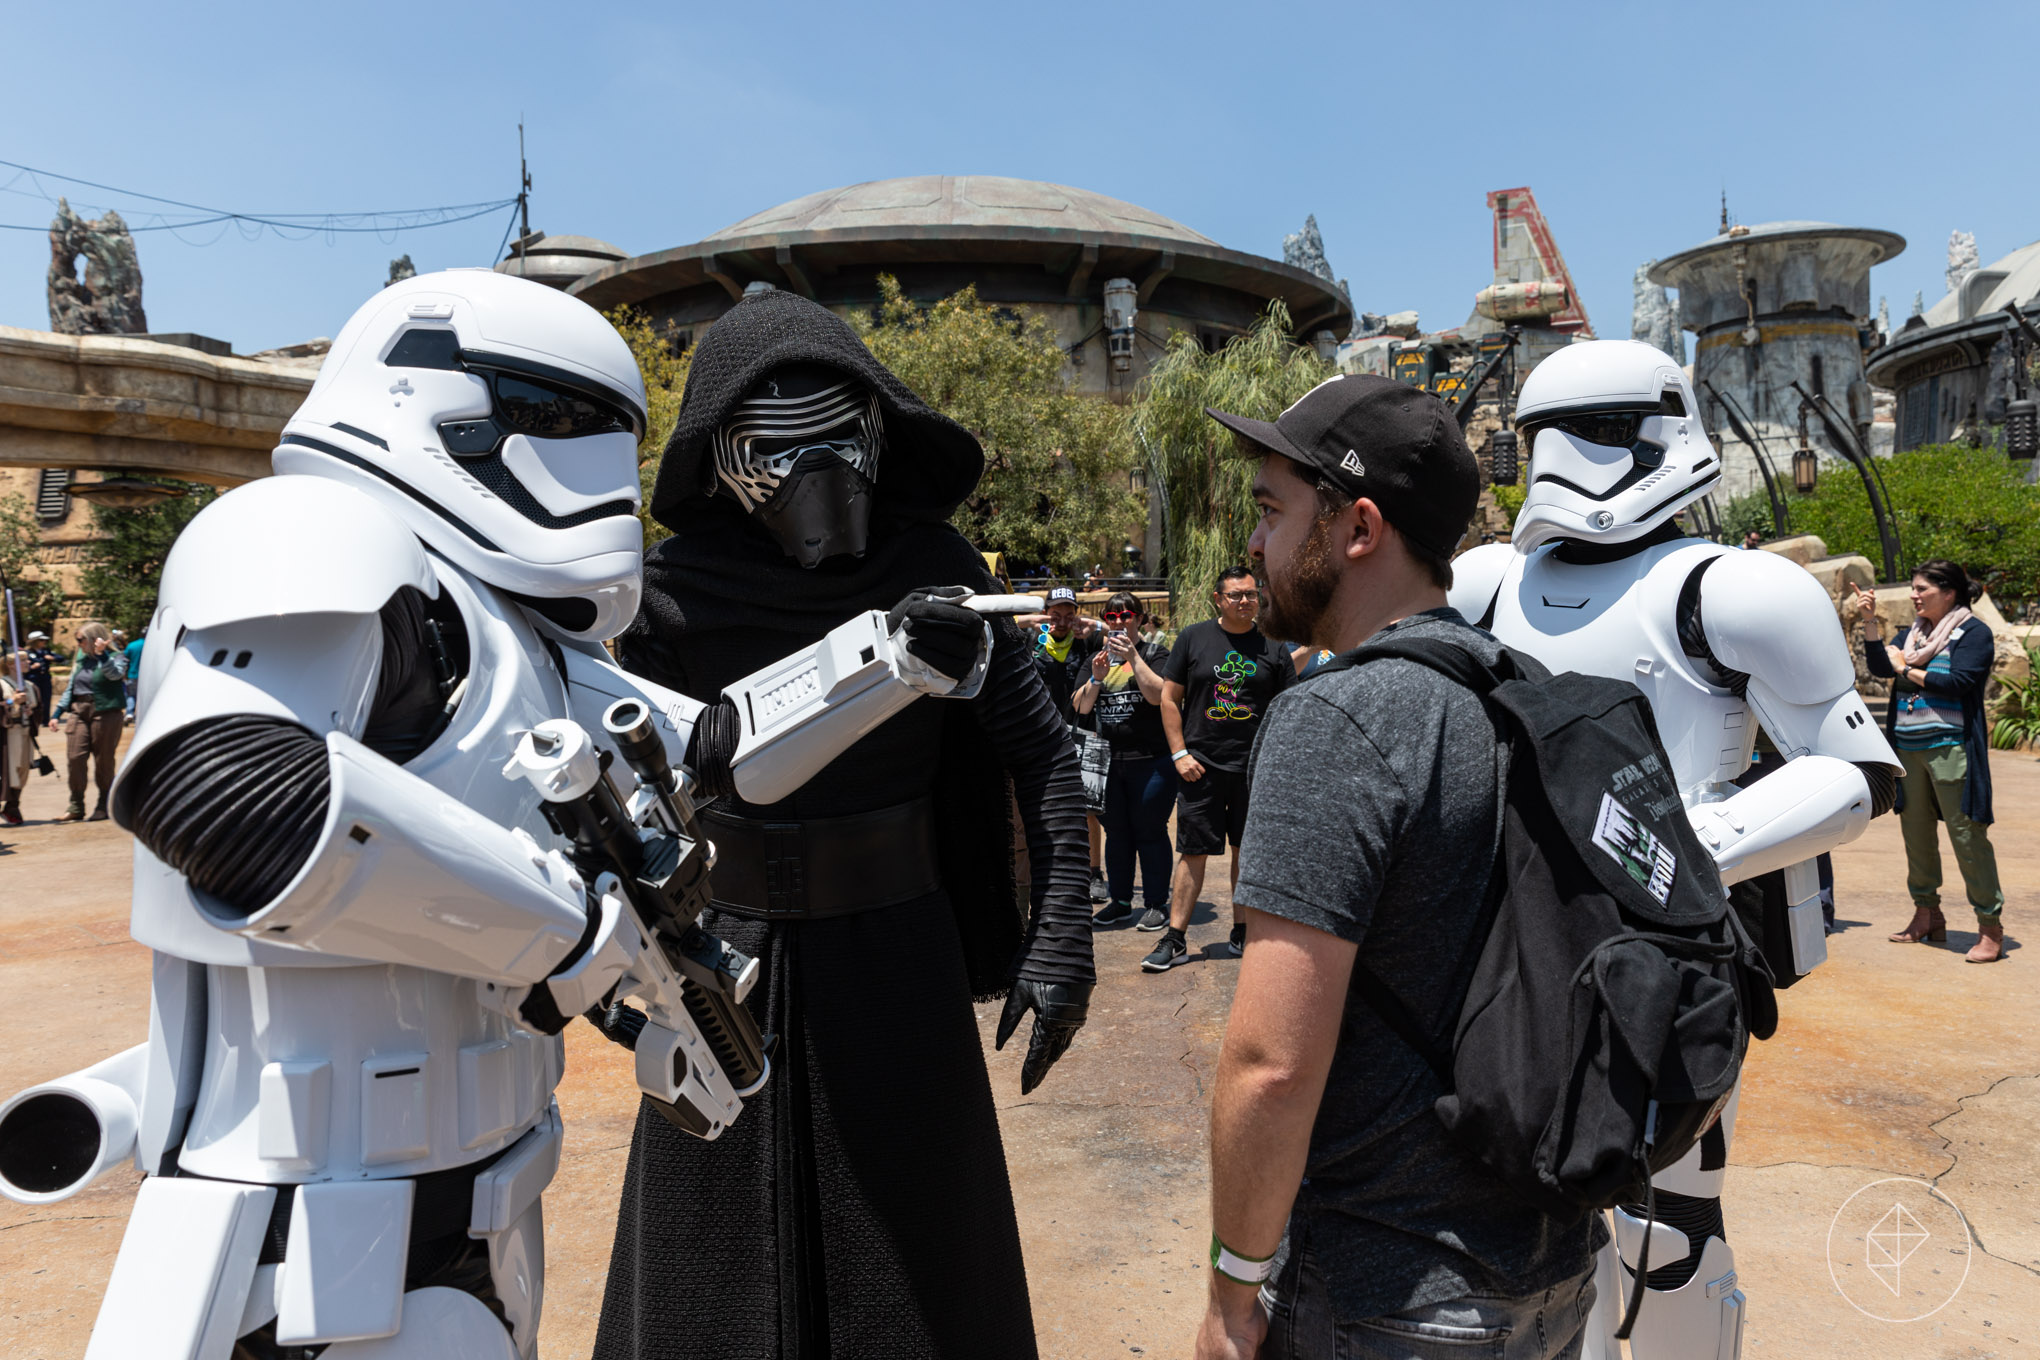 Star Wars: Galaxy's Edge's cast members are serious about staying in character